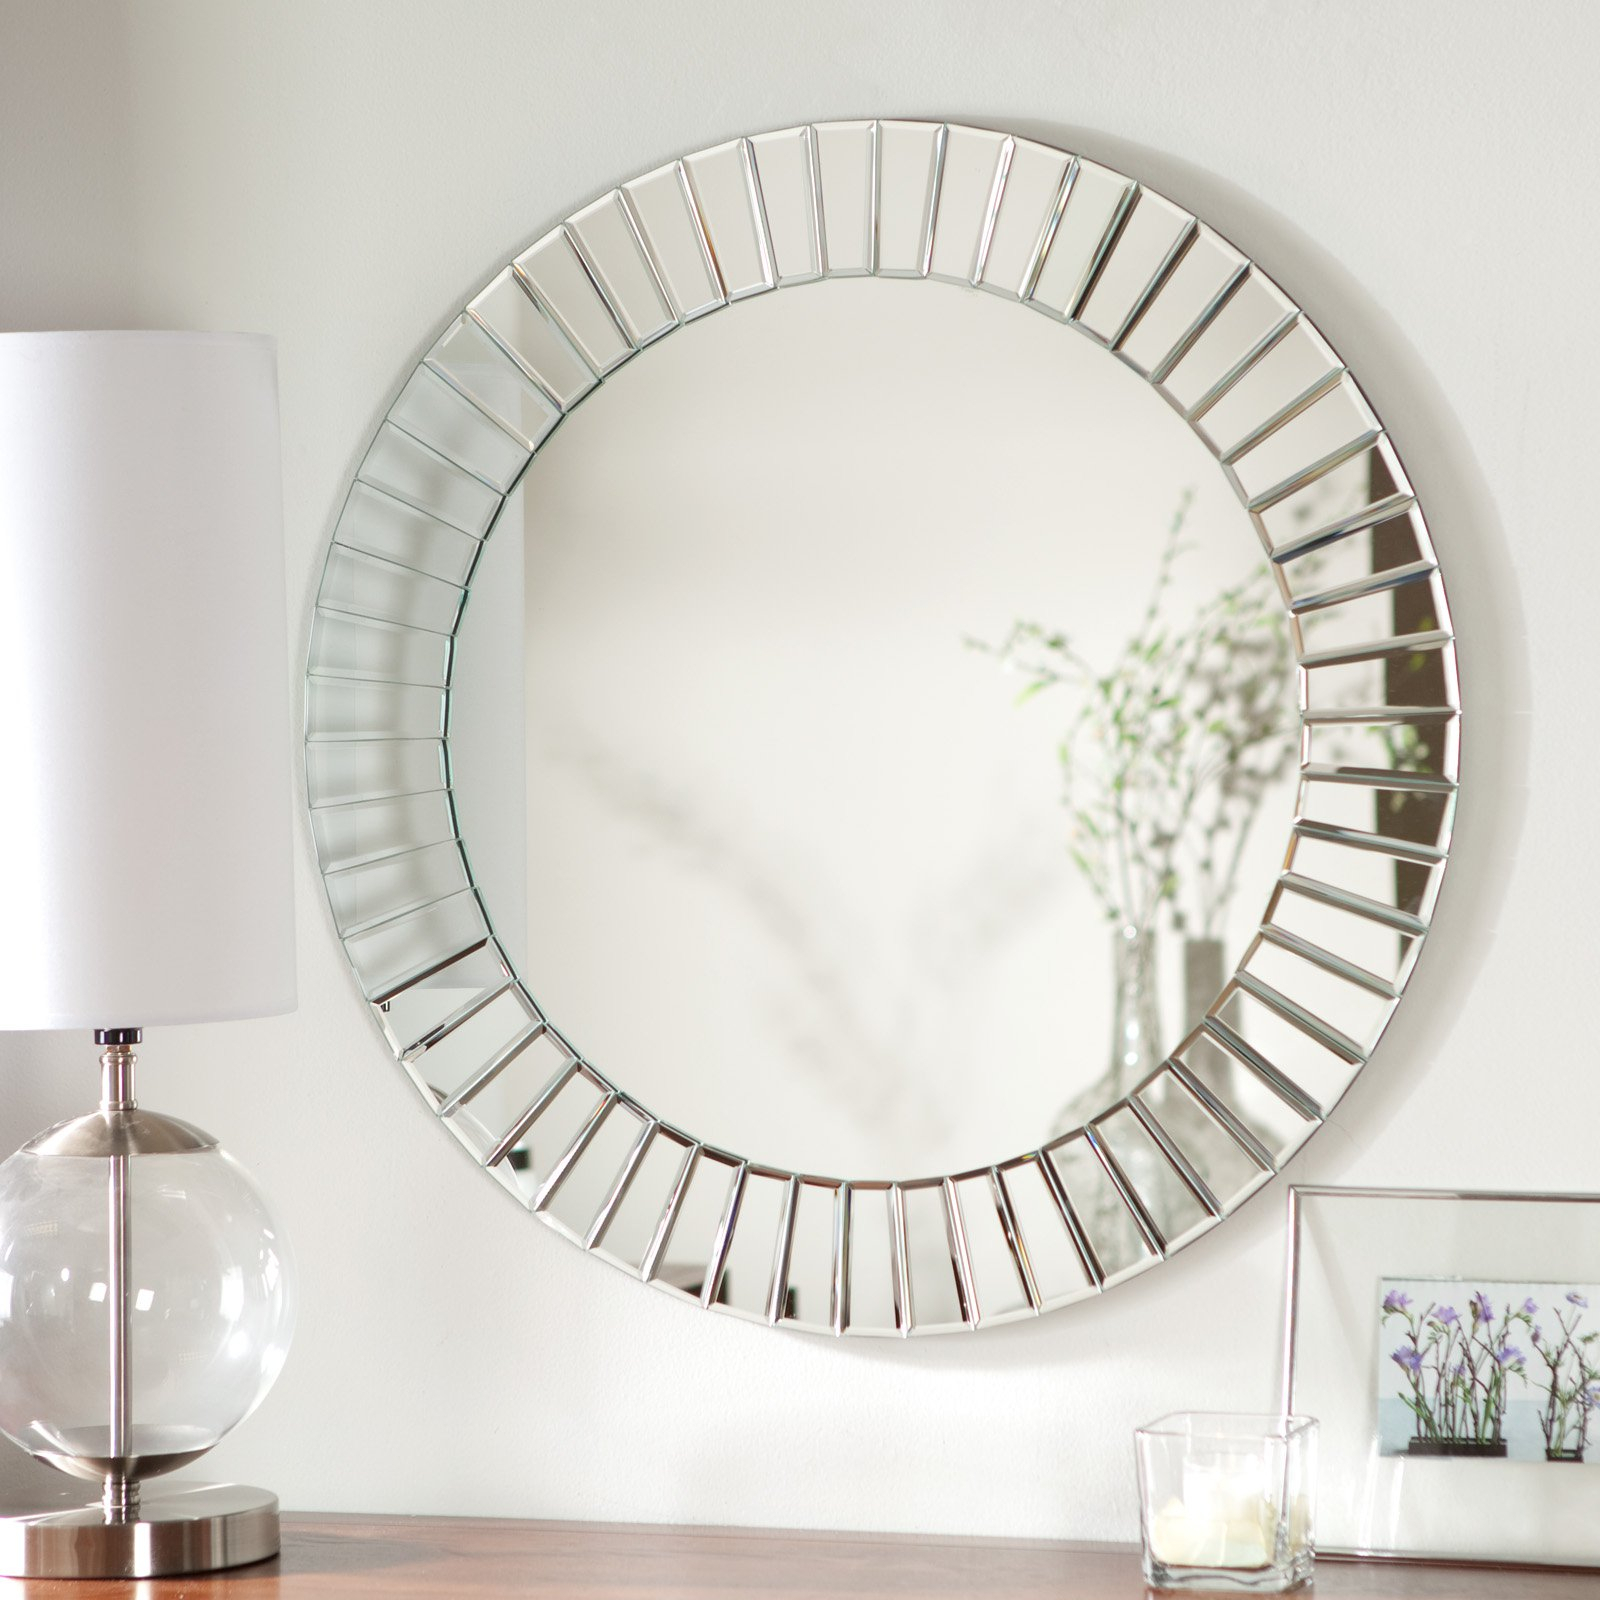 Delightful Small Oval Beveled Mirror Metal Design Lighting Within Thornbury Oval Bevel Frameless Wall Mirrors (Image 4 of 20)